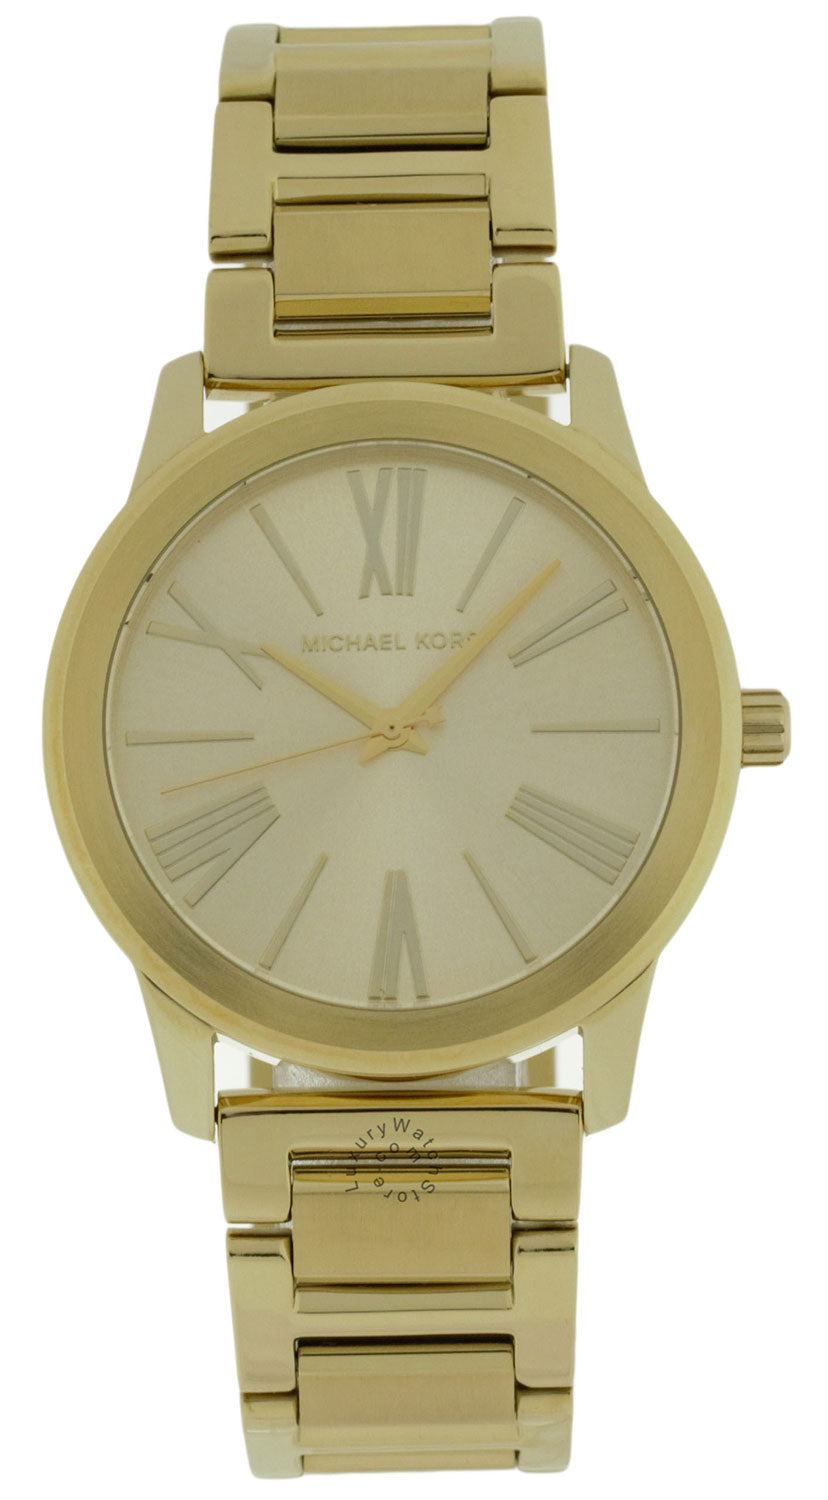 Michael Kors MK3490 Hartman Women's Gold Toned Steel Watch